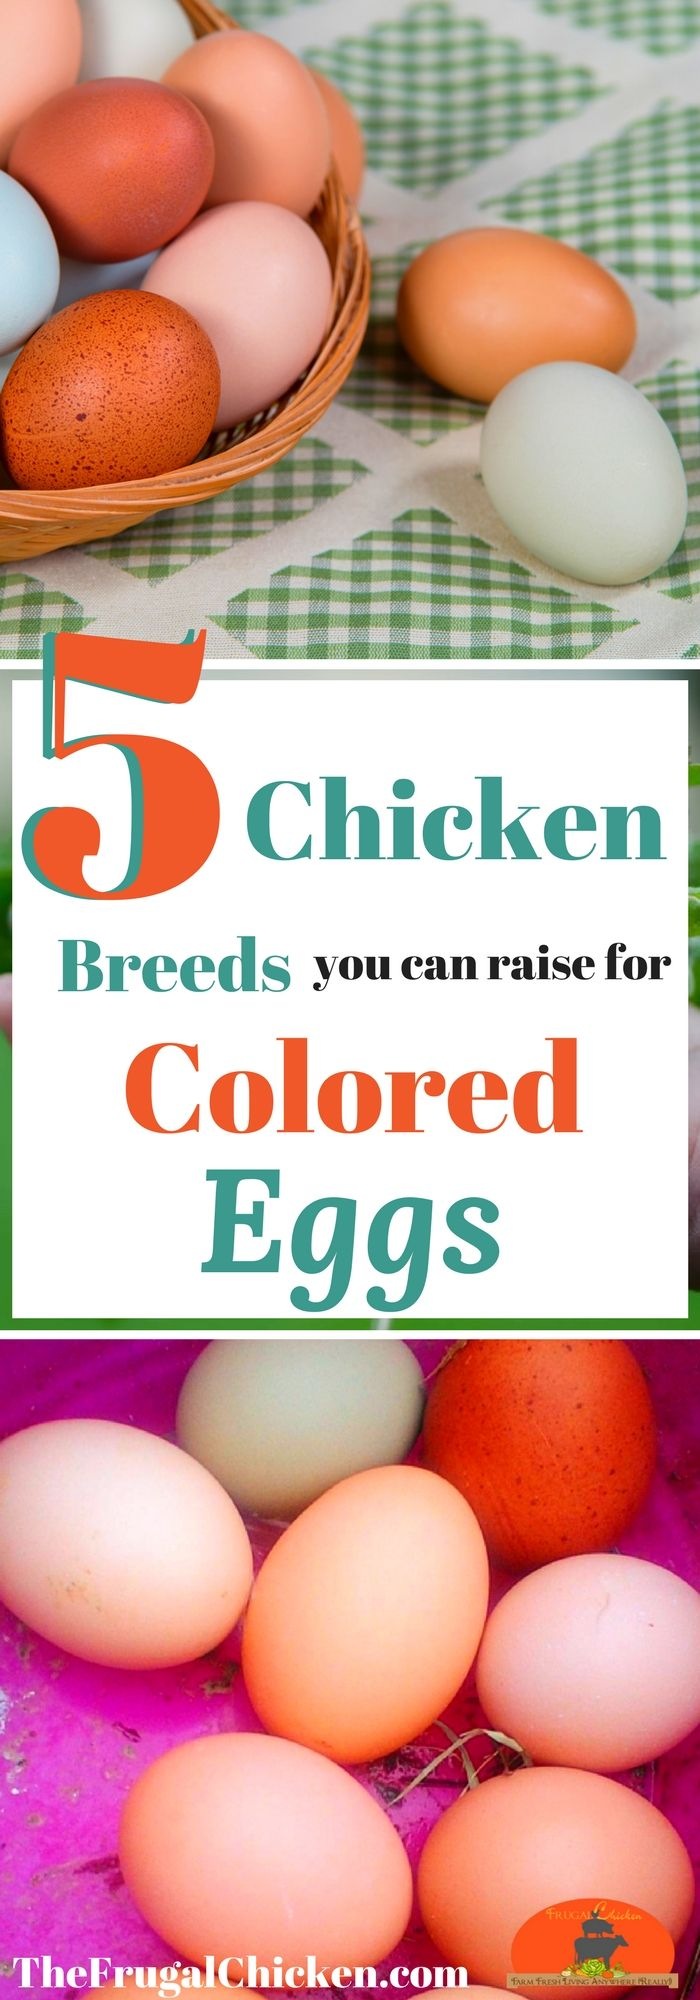 5 Chickens to Raise for Colored Eggs | Best egg laying ...